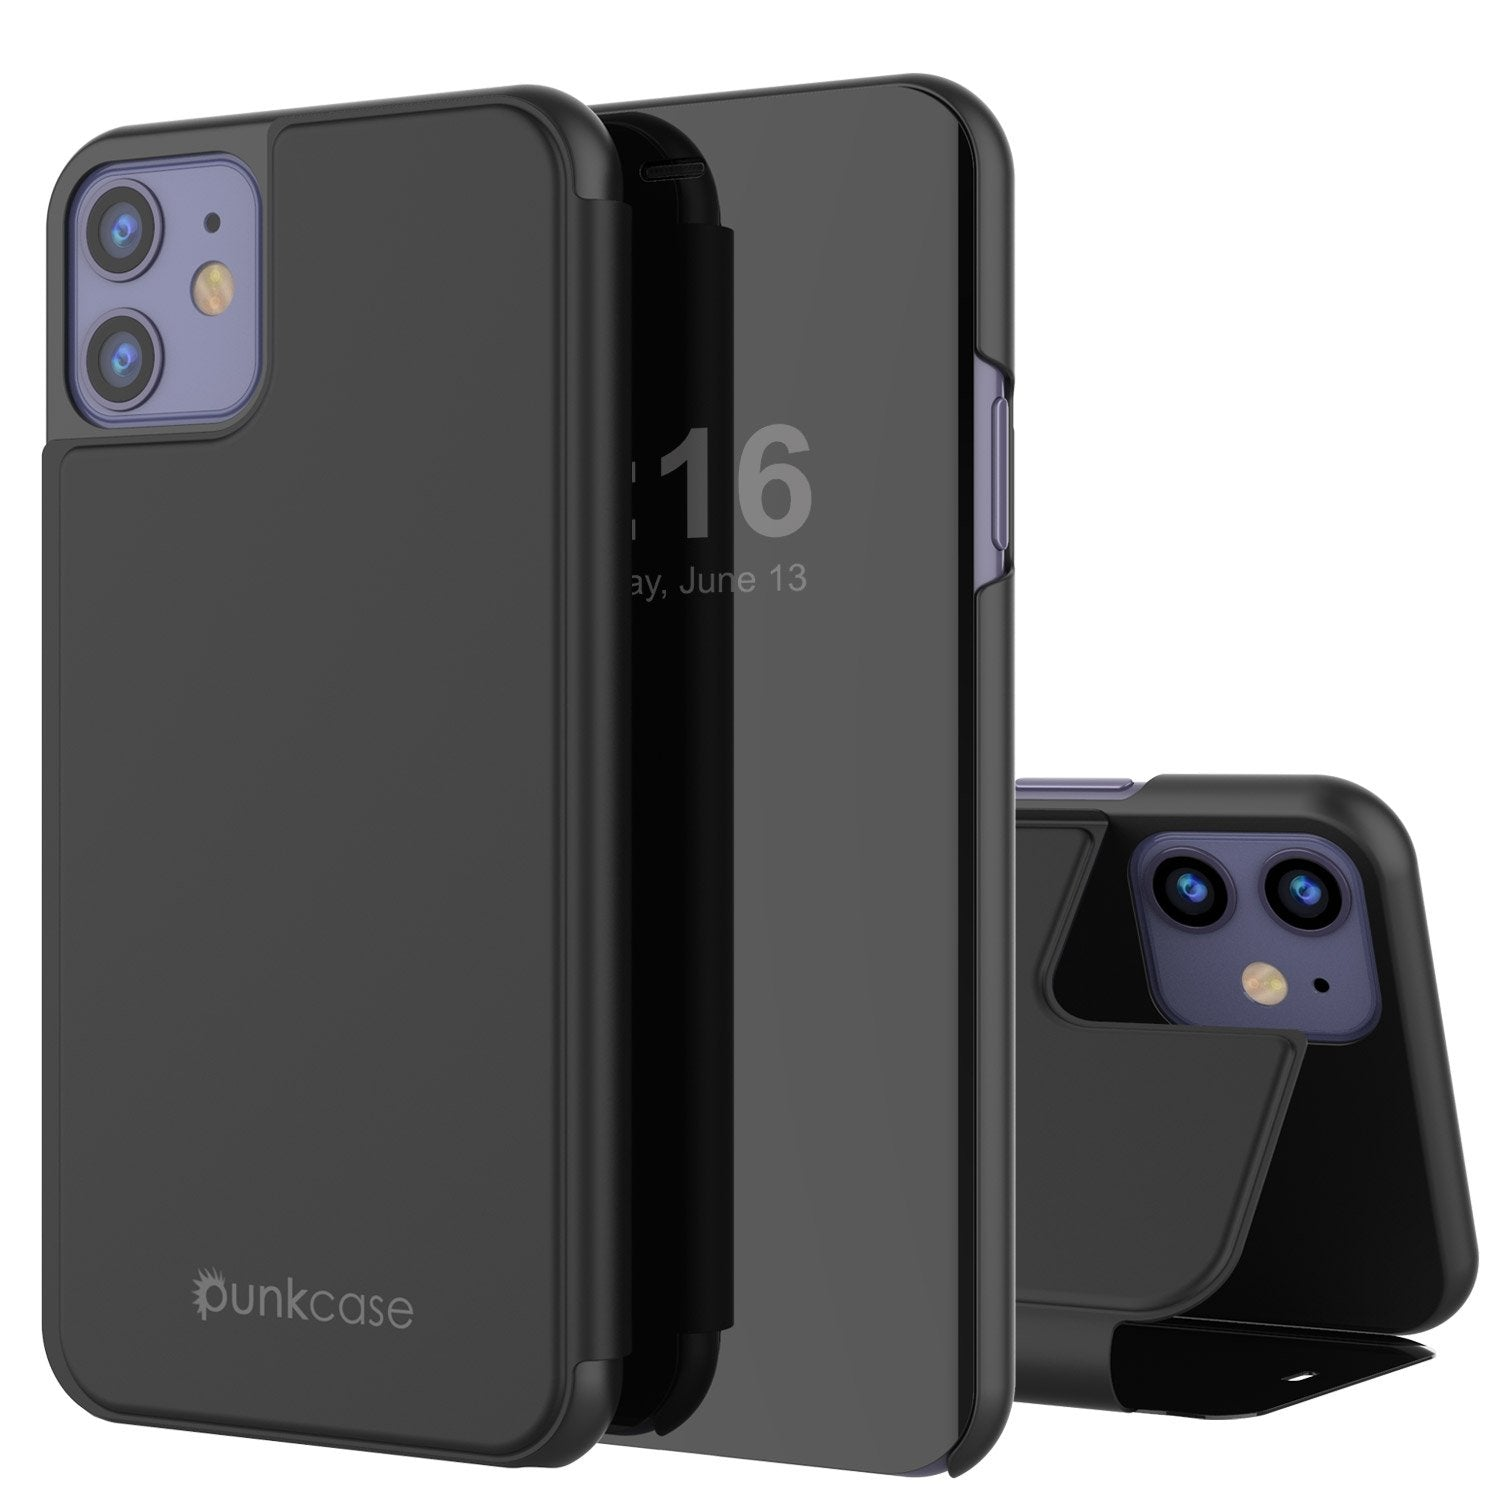 Punkcase iPhone 11 Pro Reflector Case Protective Flip Cover [Black]